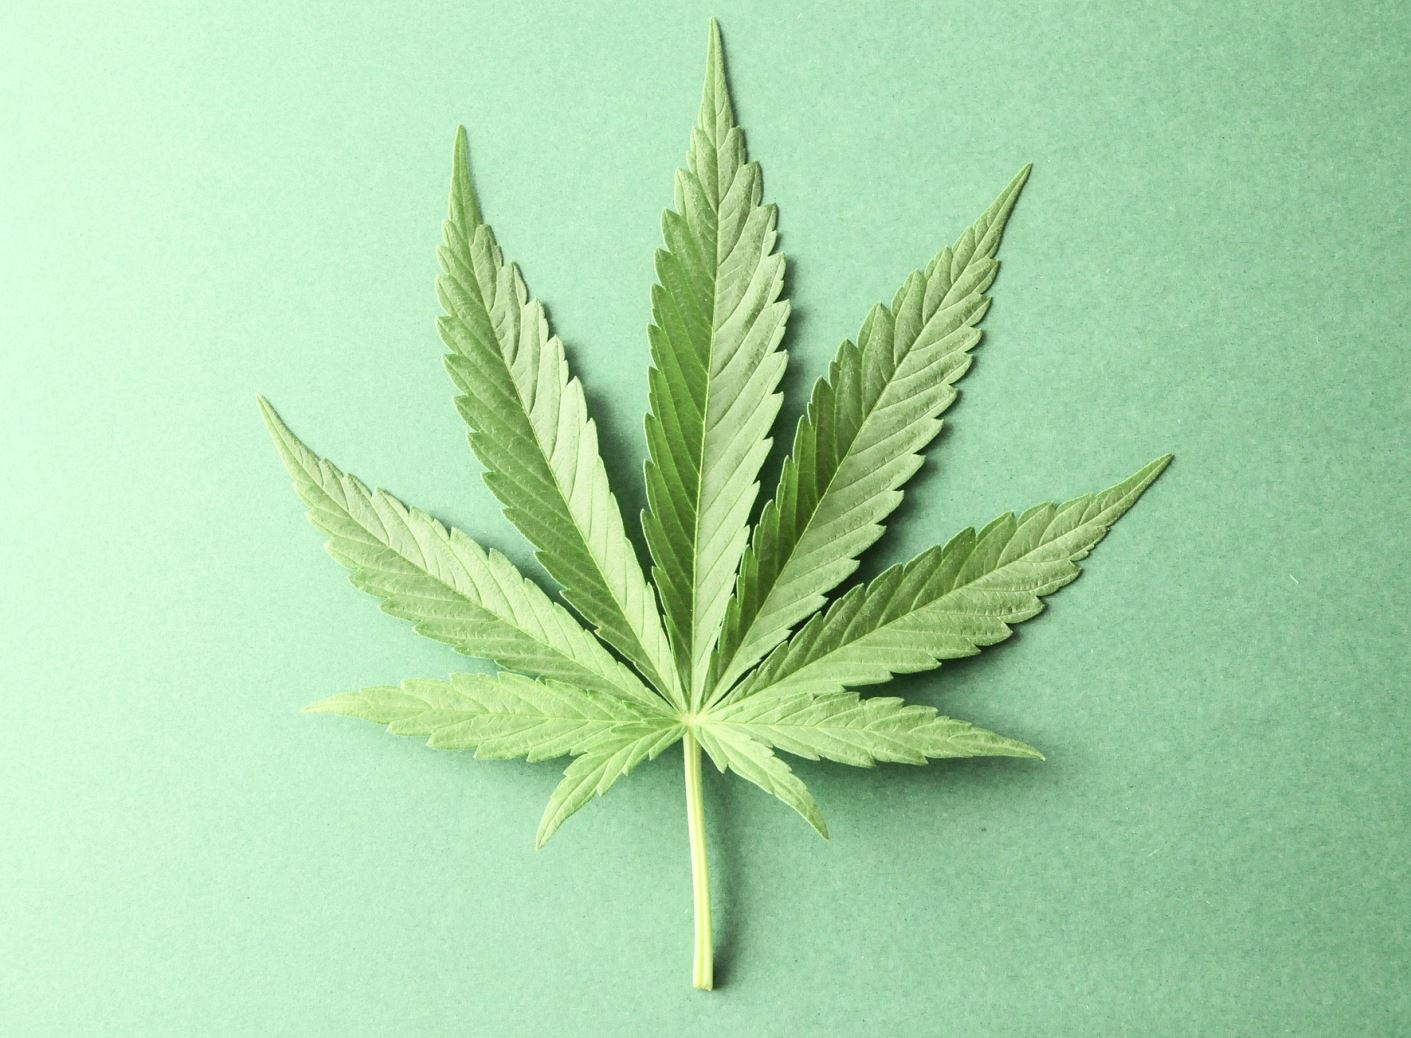 WHAT IMPACT WILL MEDICAL MARIJUANA HAVE ON MISSOURI WORKPLACES AND DRUG TESTING BY EMPLOYERS?